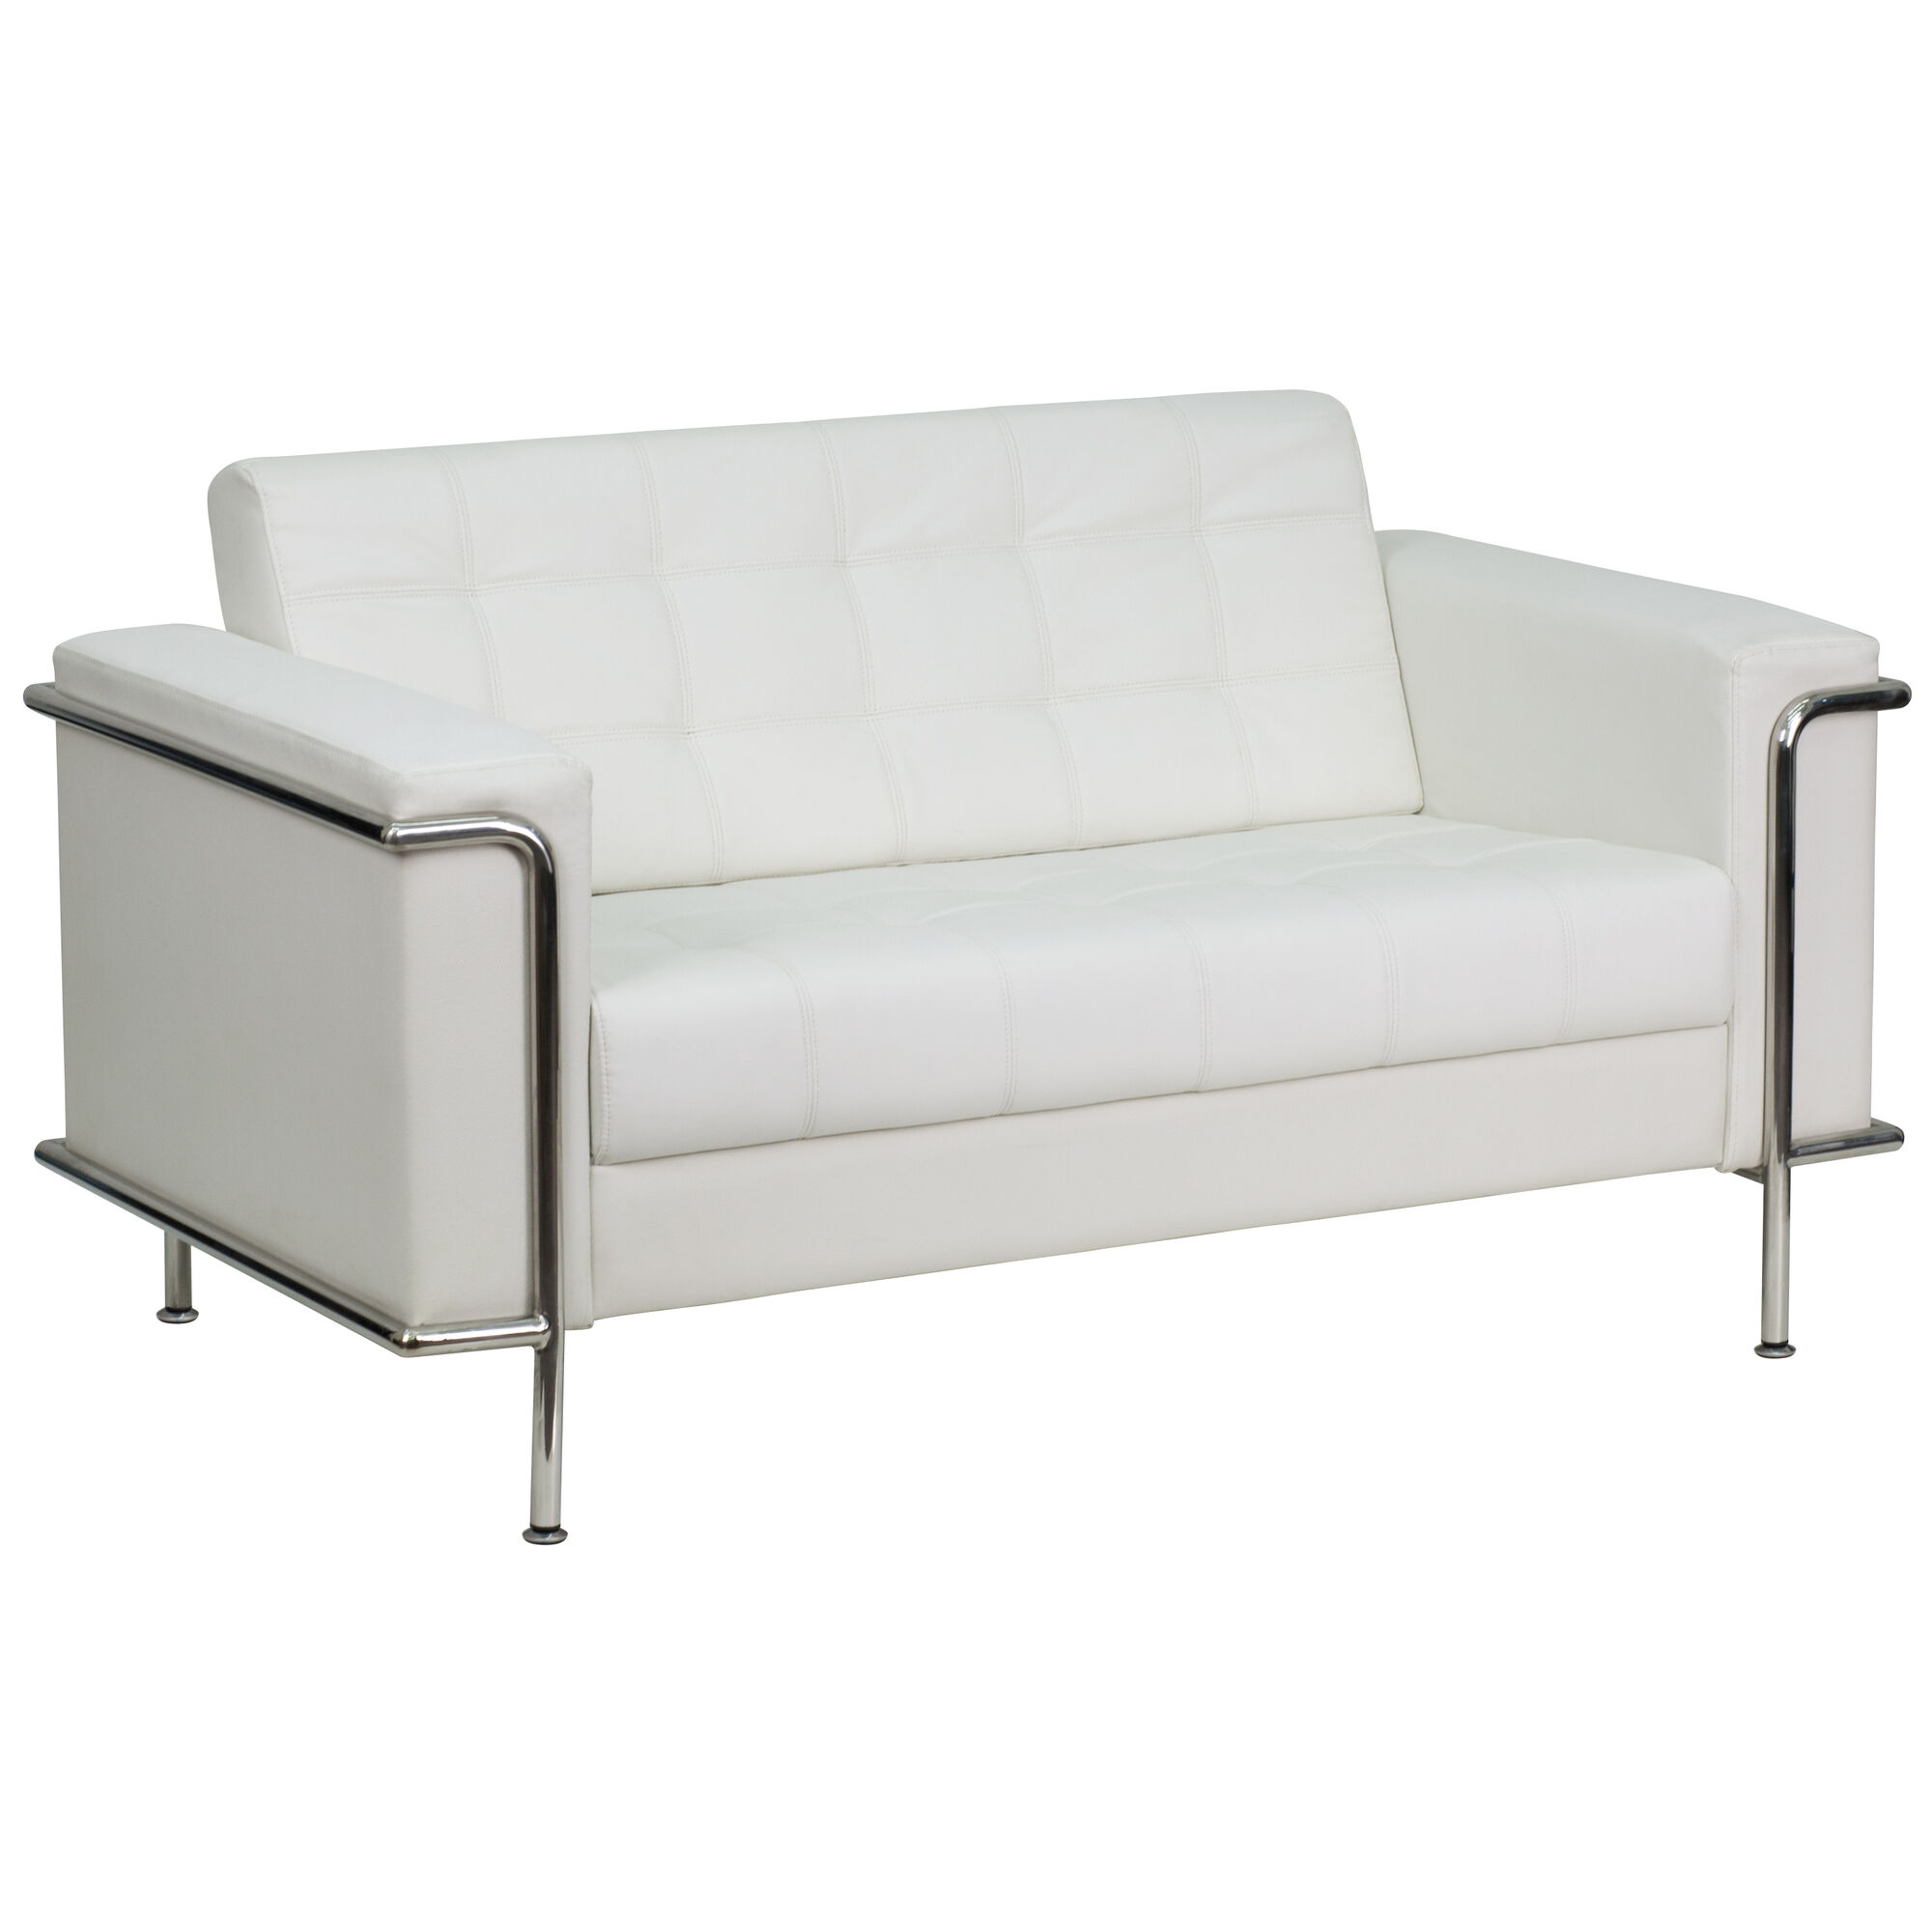 Flash Furniture Hercules Lesley Series Contemporary Melrose White Leather Loveseat With Encasing